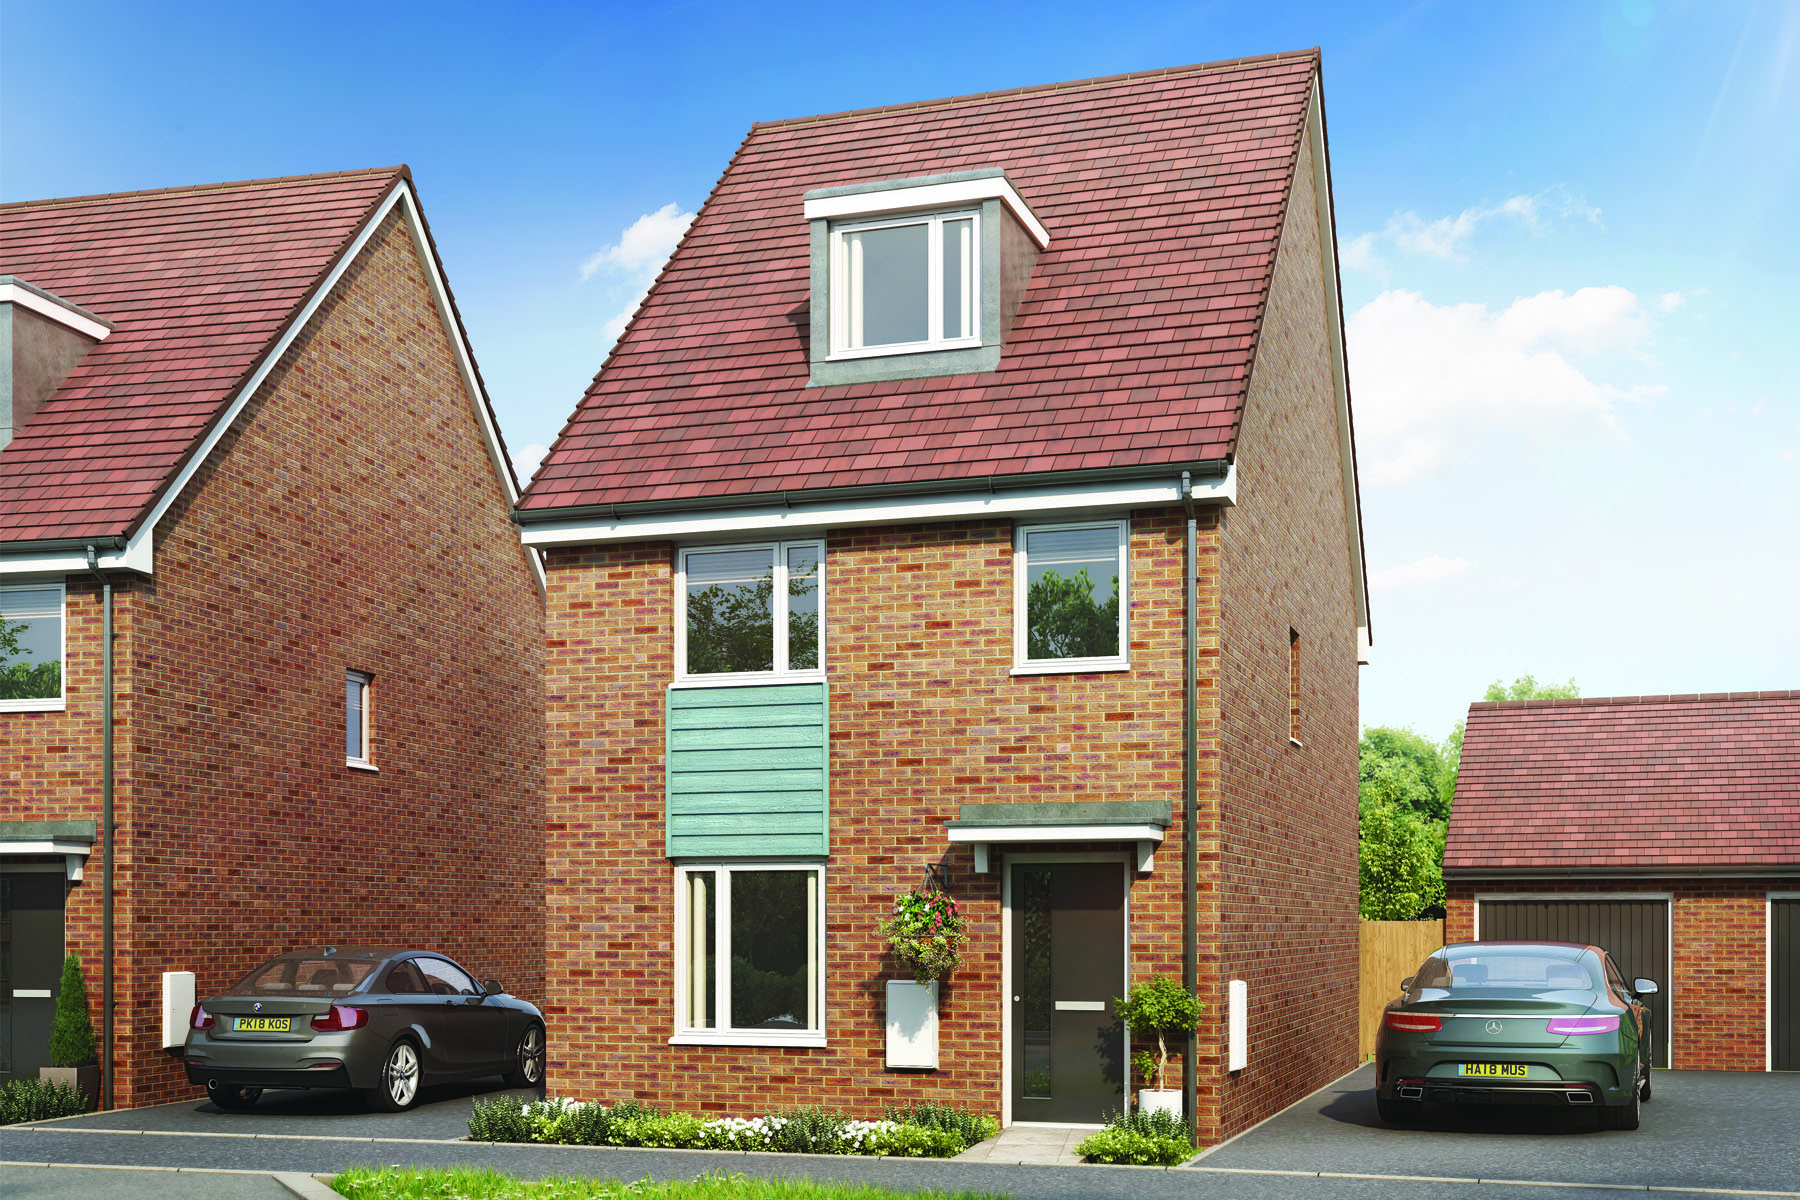 TB41 Easton - Plot 273